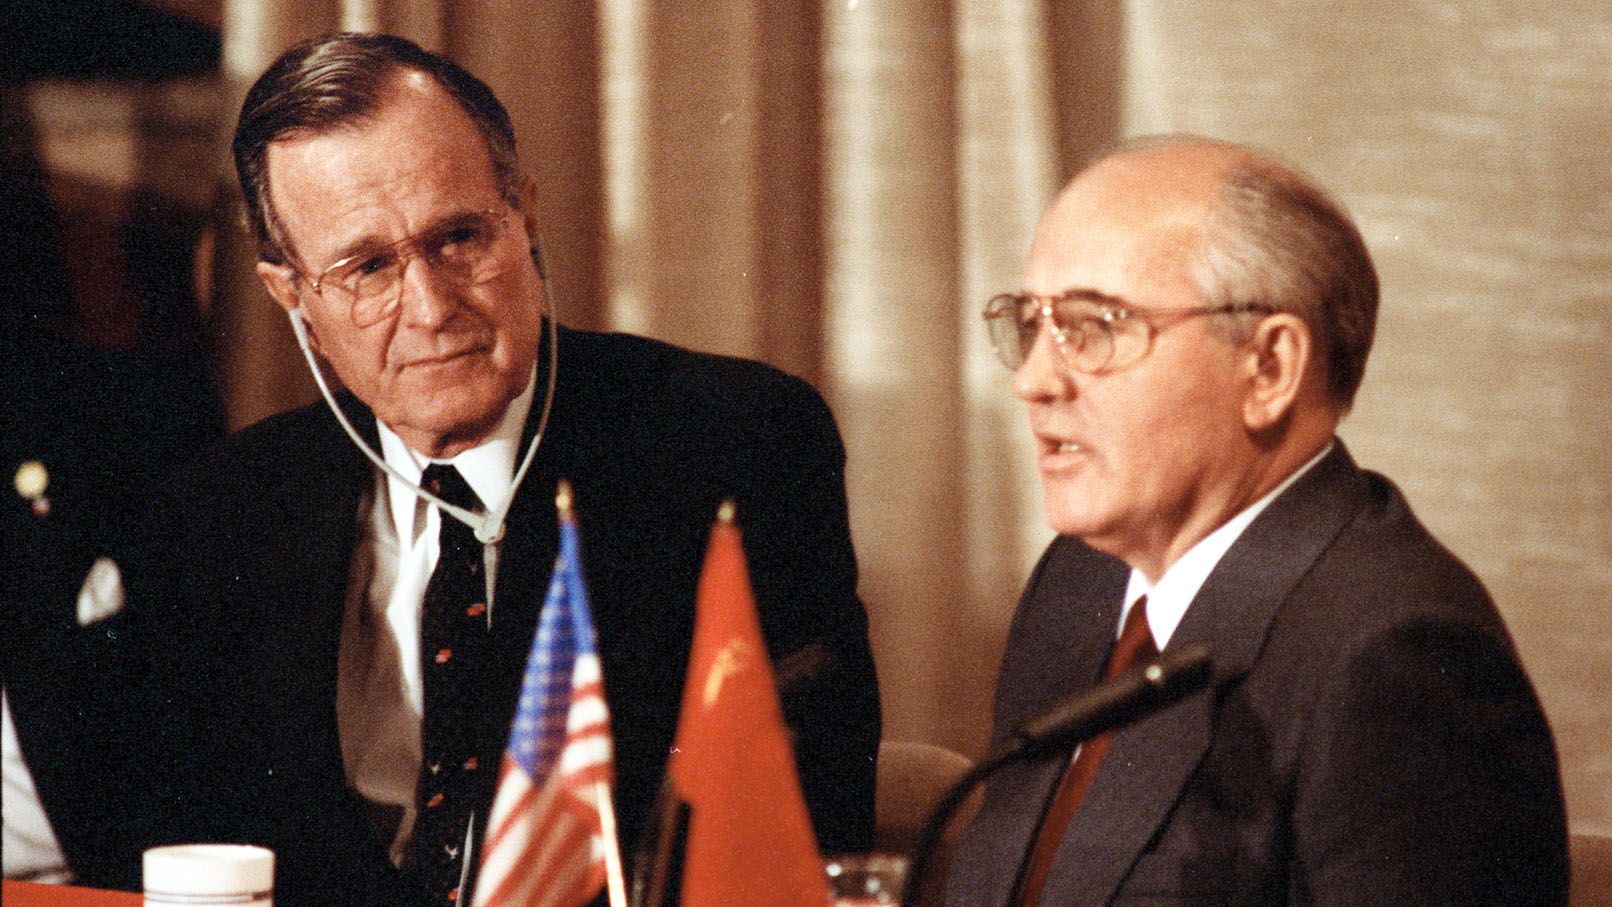 Bush and Gorbachev at Malta, December 1989 - the first time ever that an American President and Soviet General Secretary held a simultaneous joint press conference.